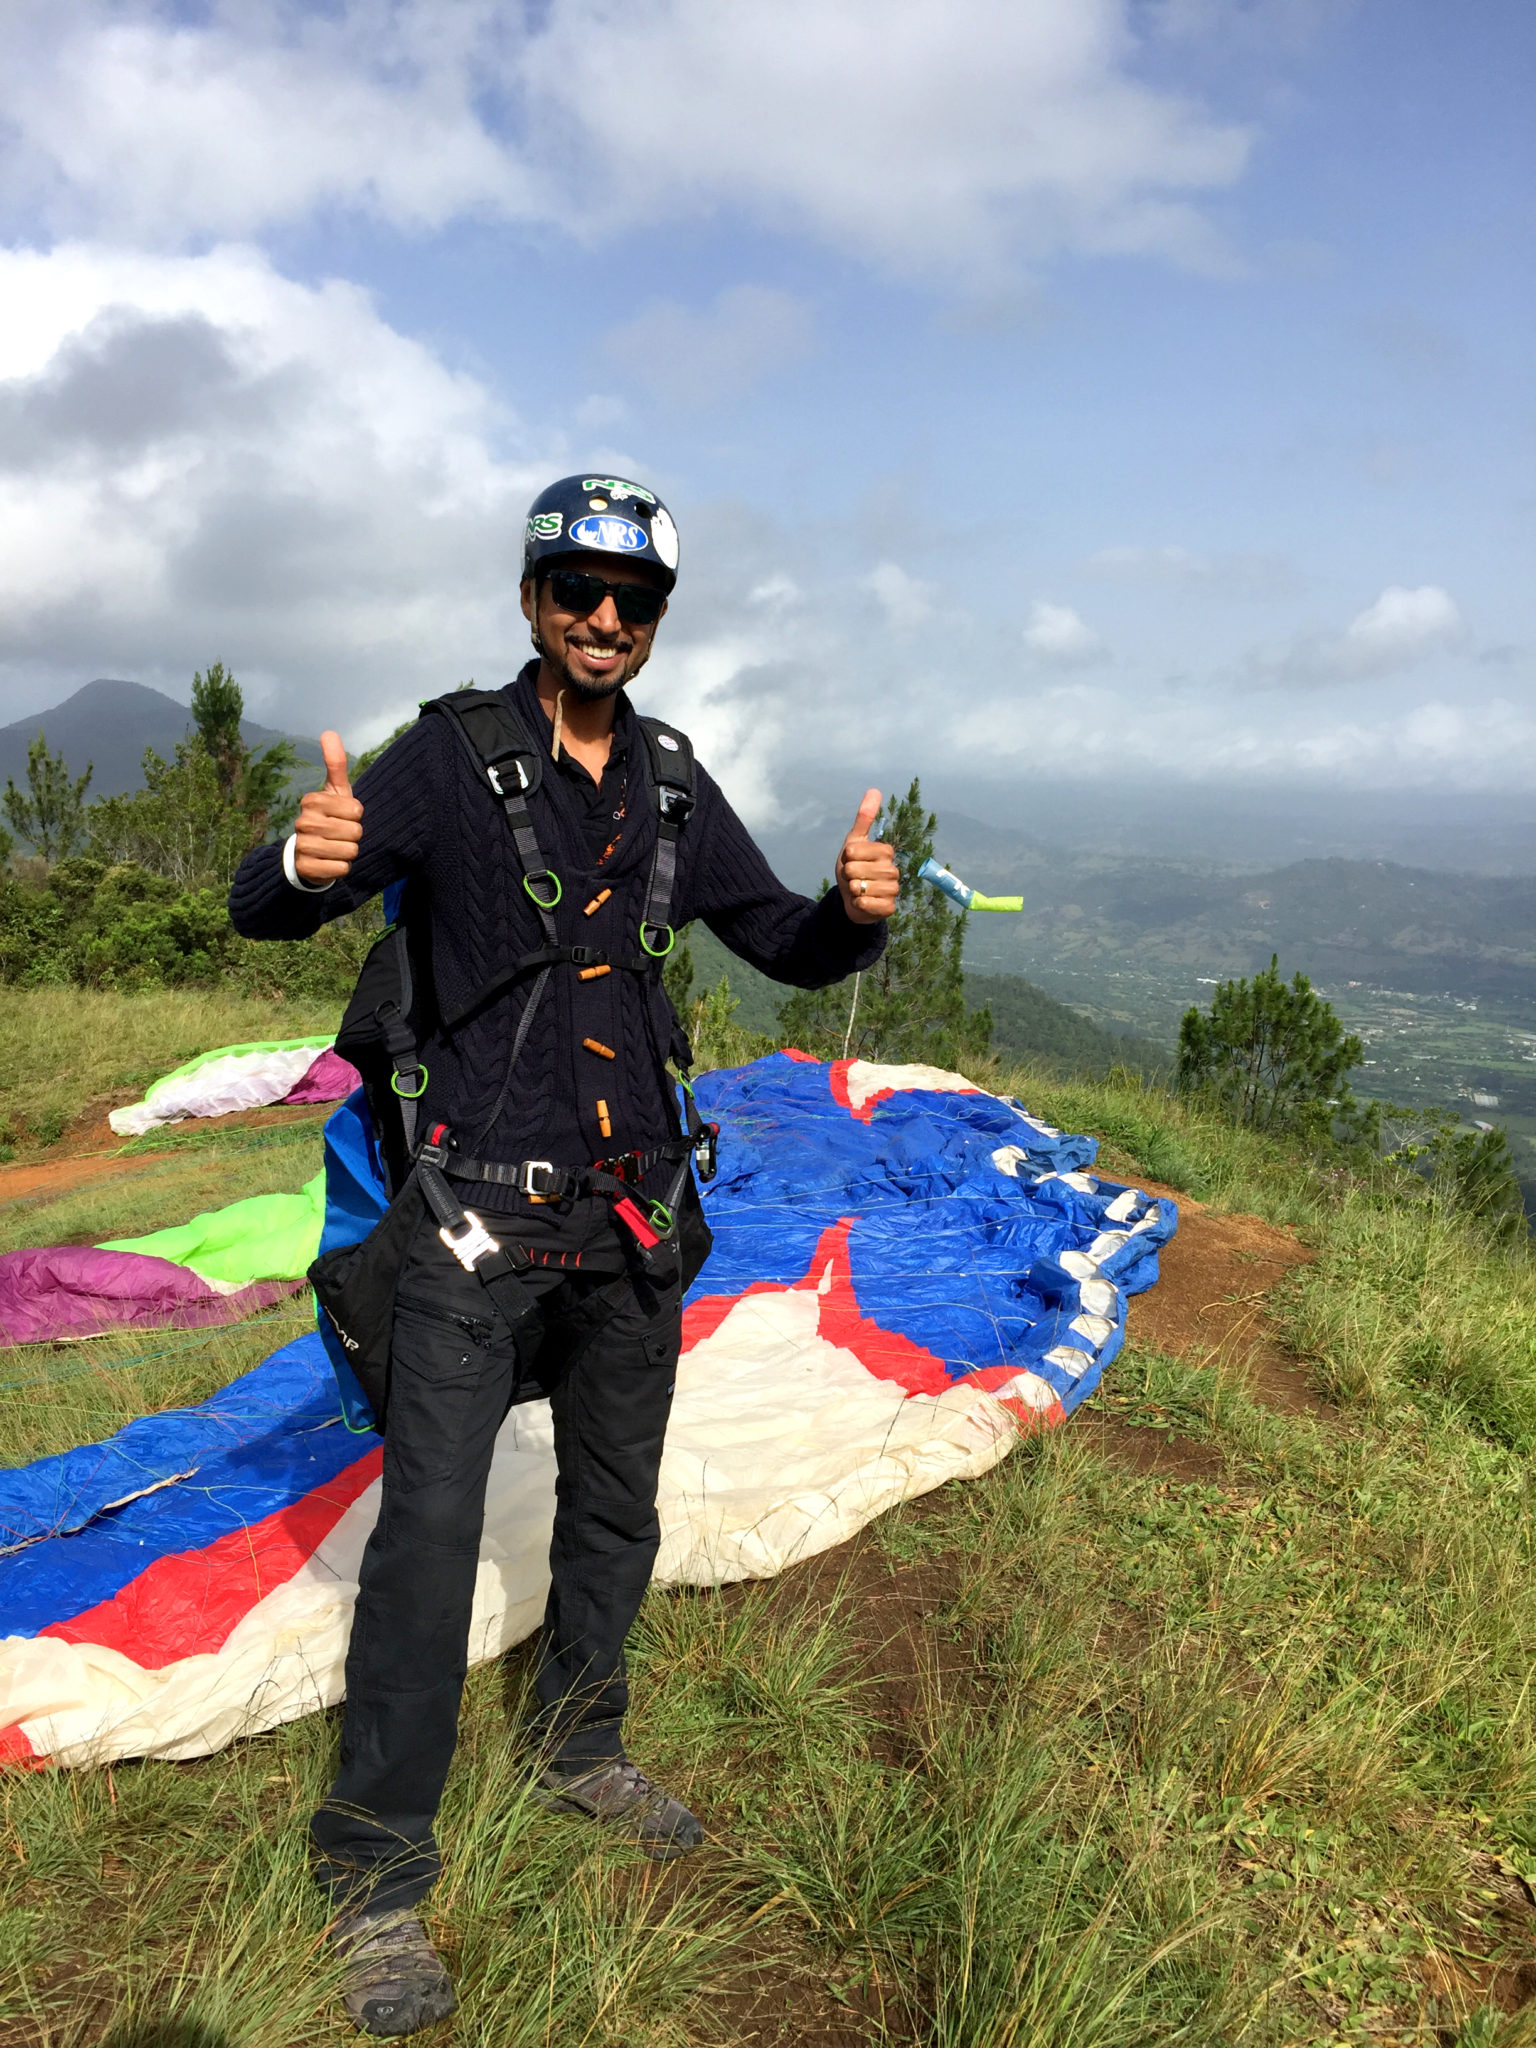 Republique_dominicaine_jarabacoa_parapente_hema_pose_ses_valises_chris